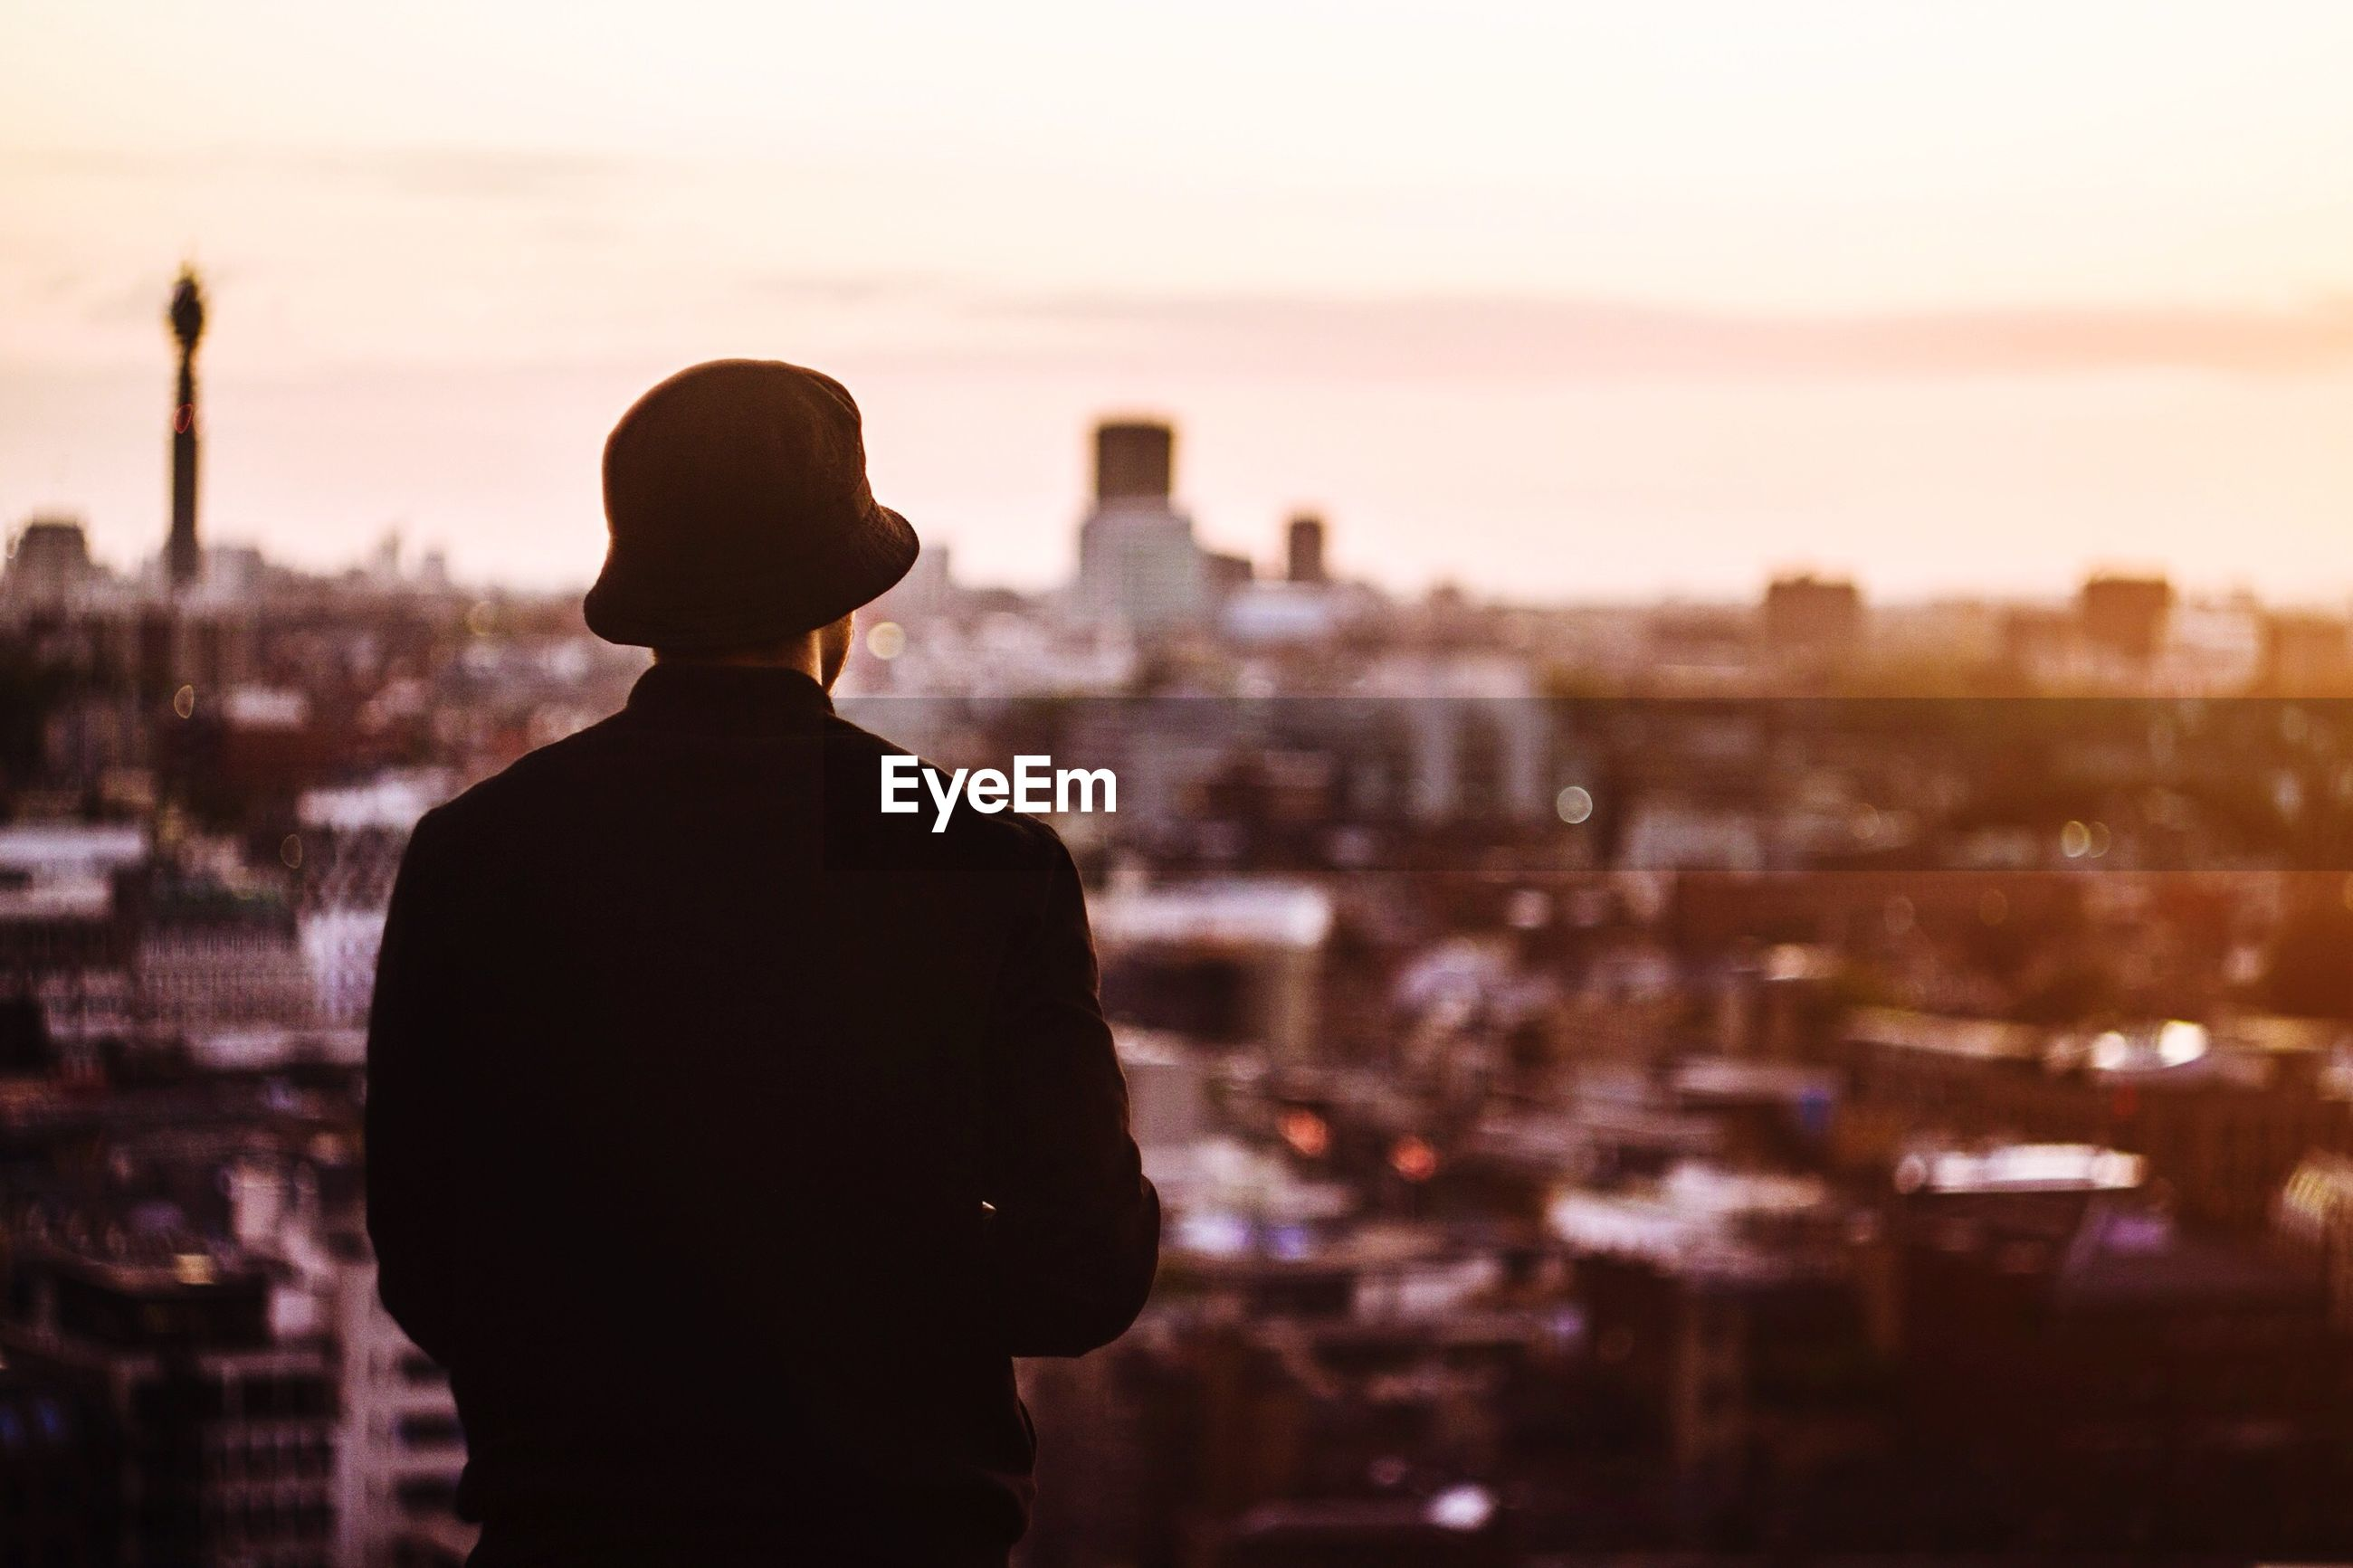 Rear view of man wearing hat looking at cityscape during sunset